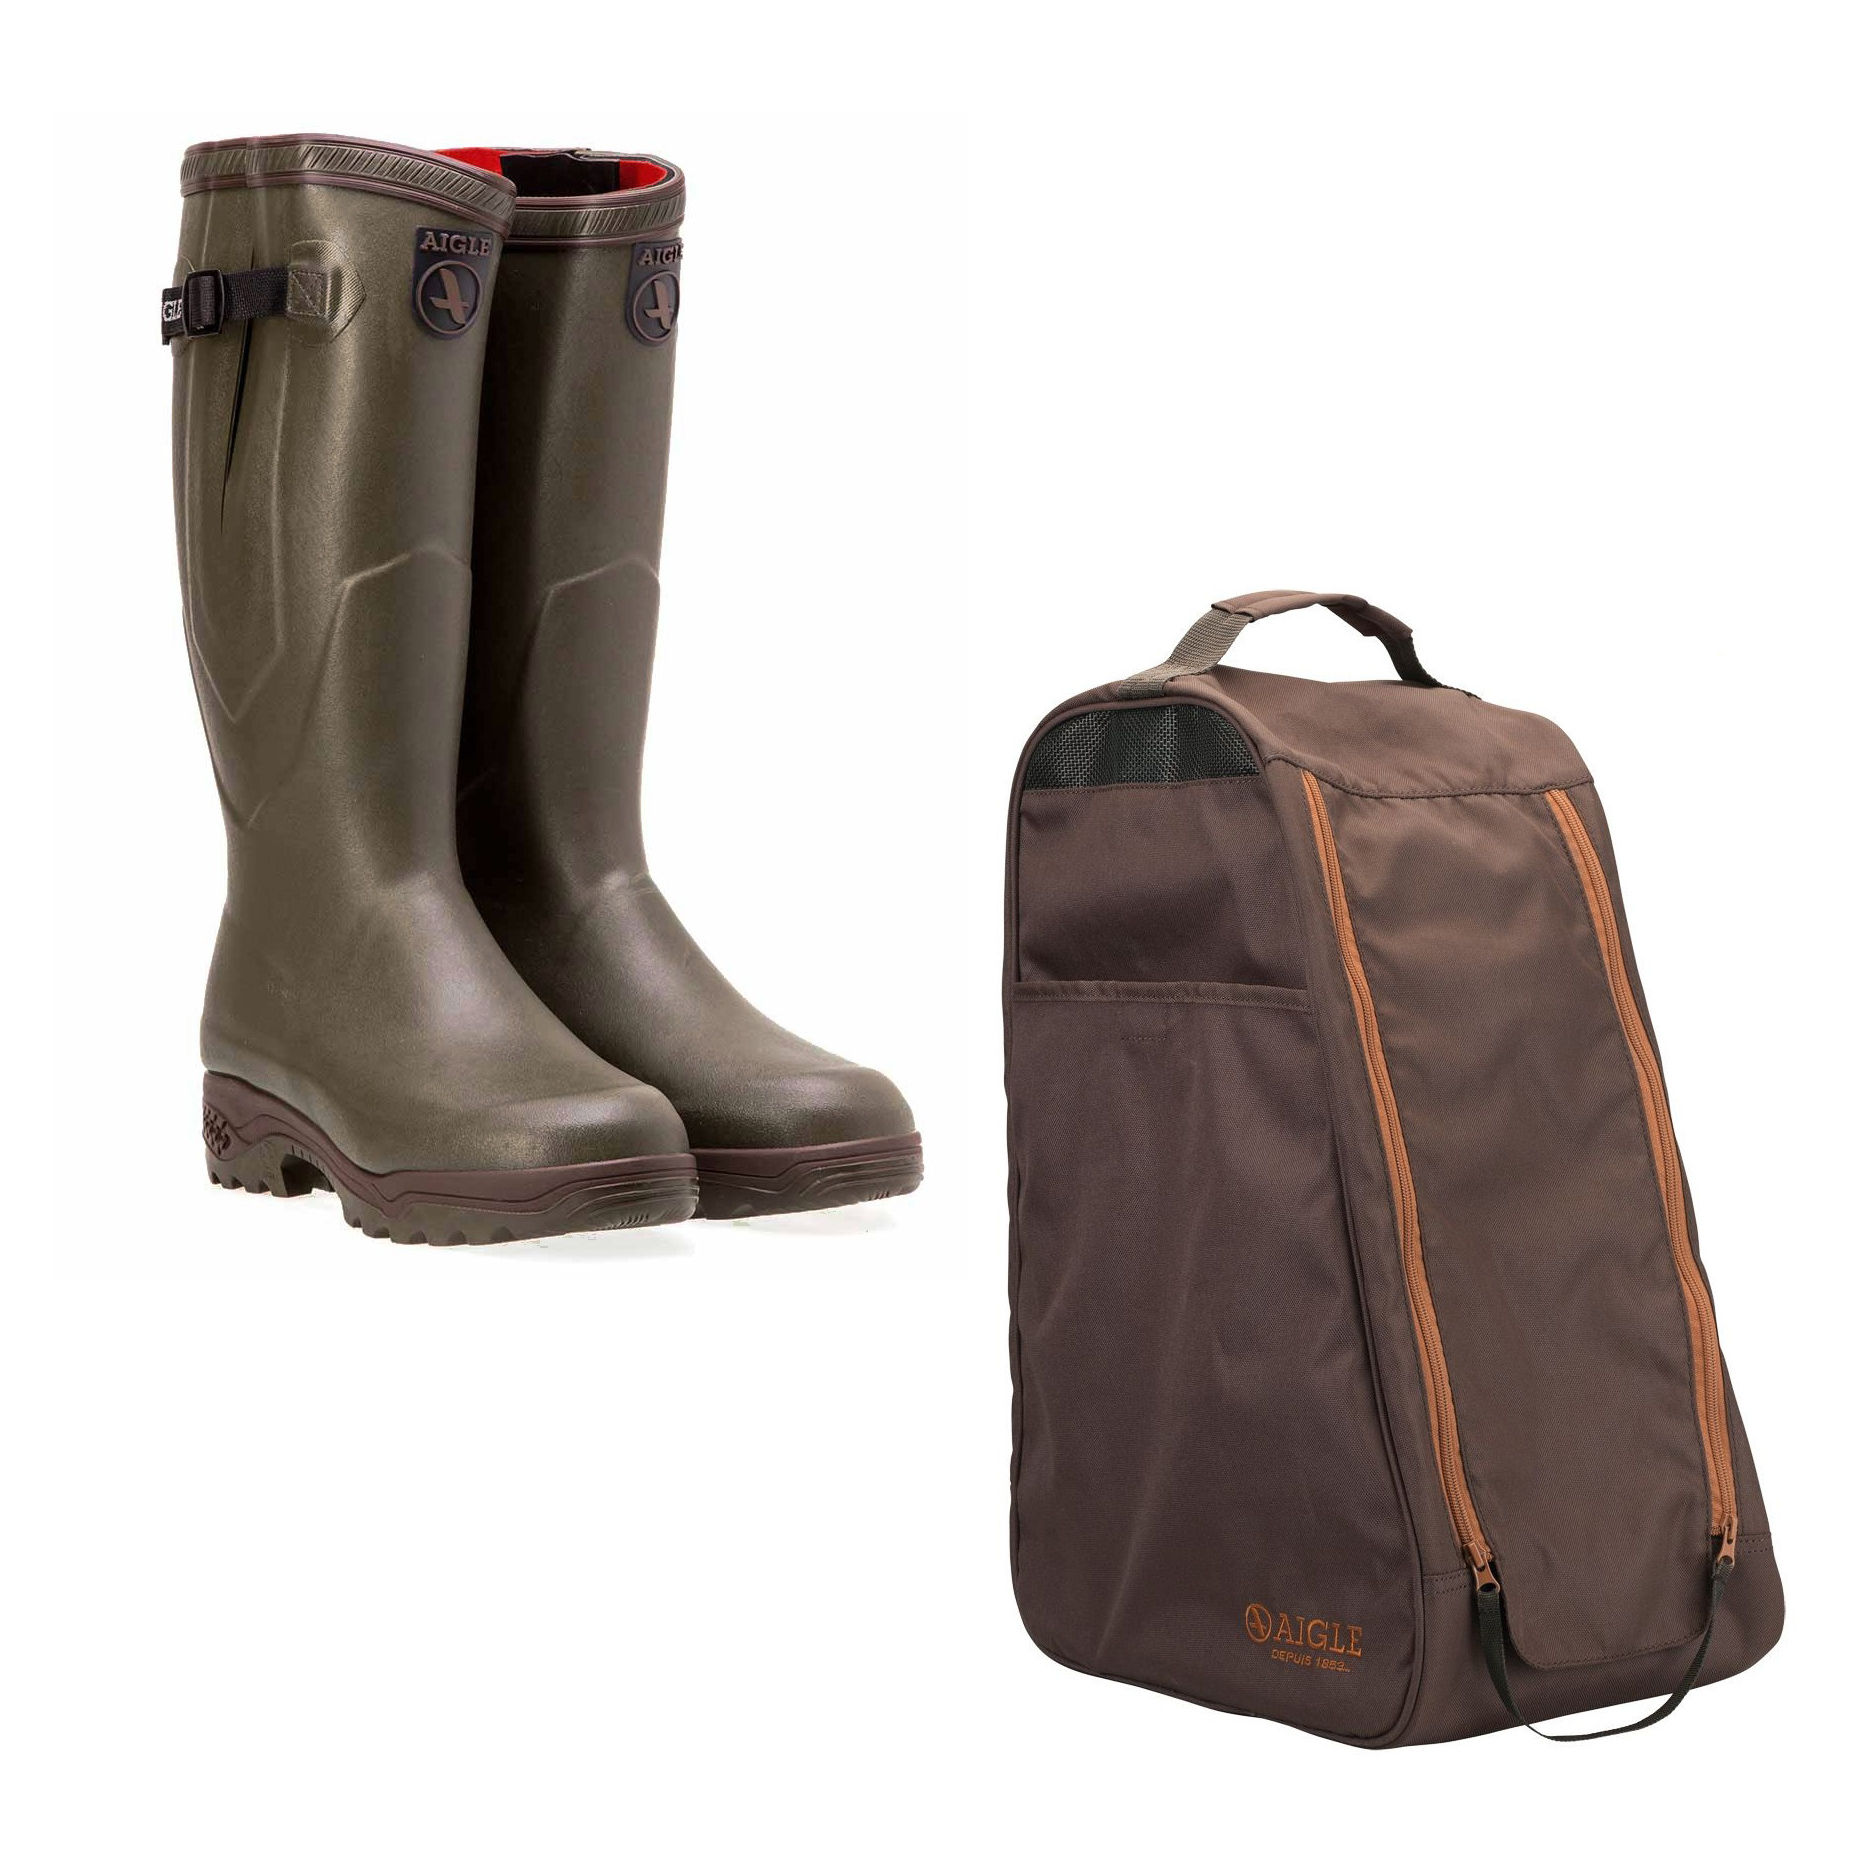 Aigle Parcours 2 ISO Insulated